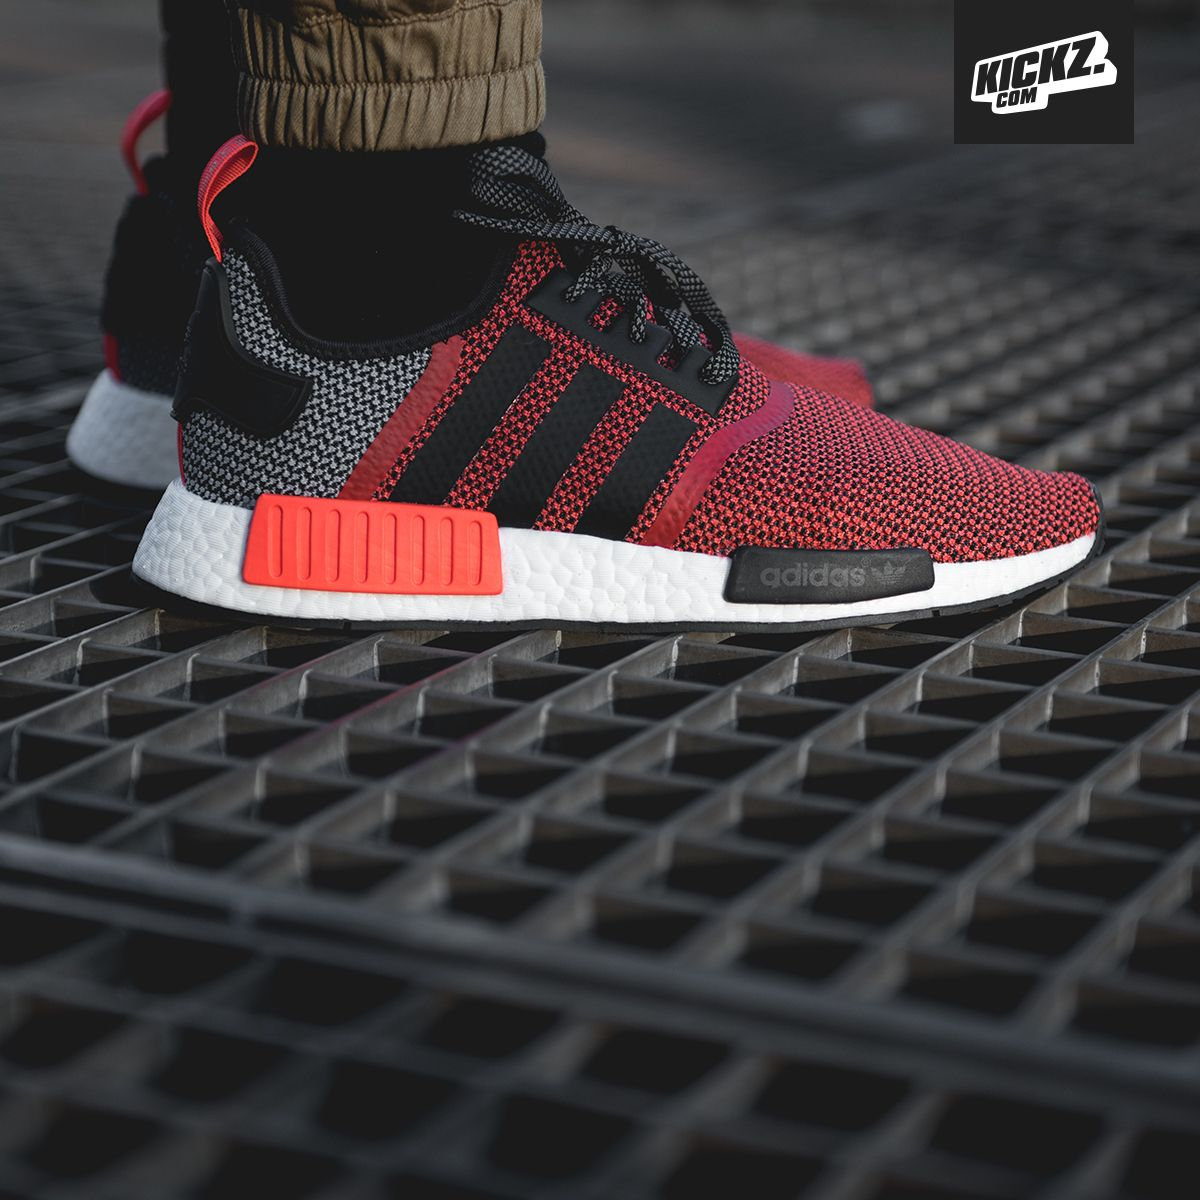 The adidas NMD R1 lush red/core black